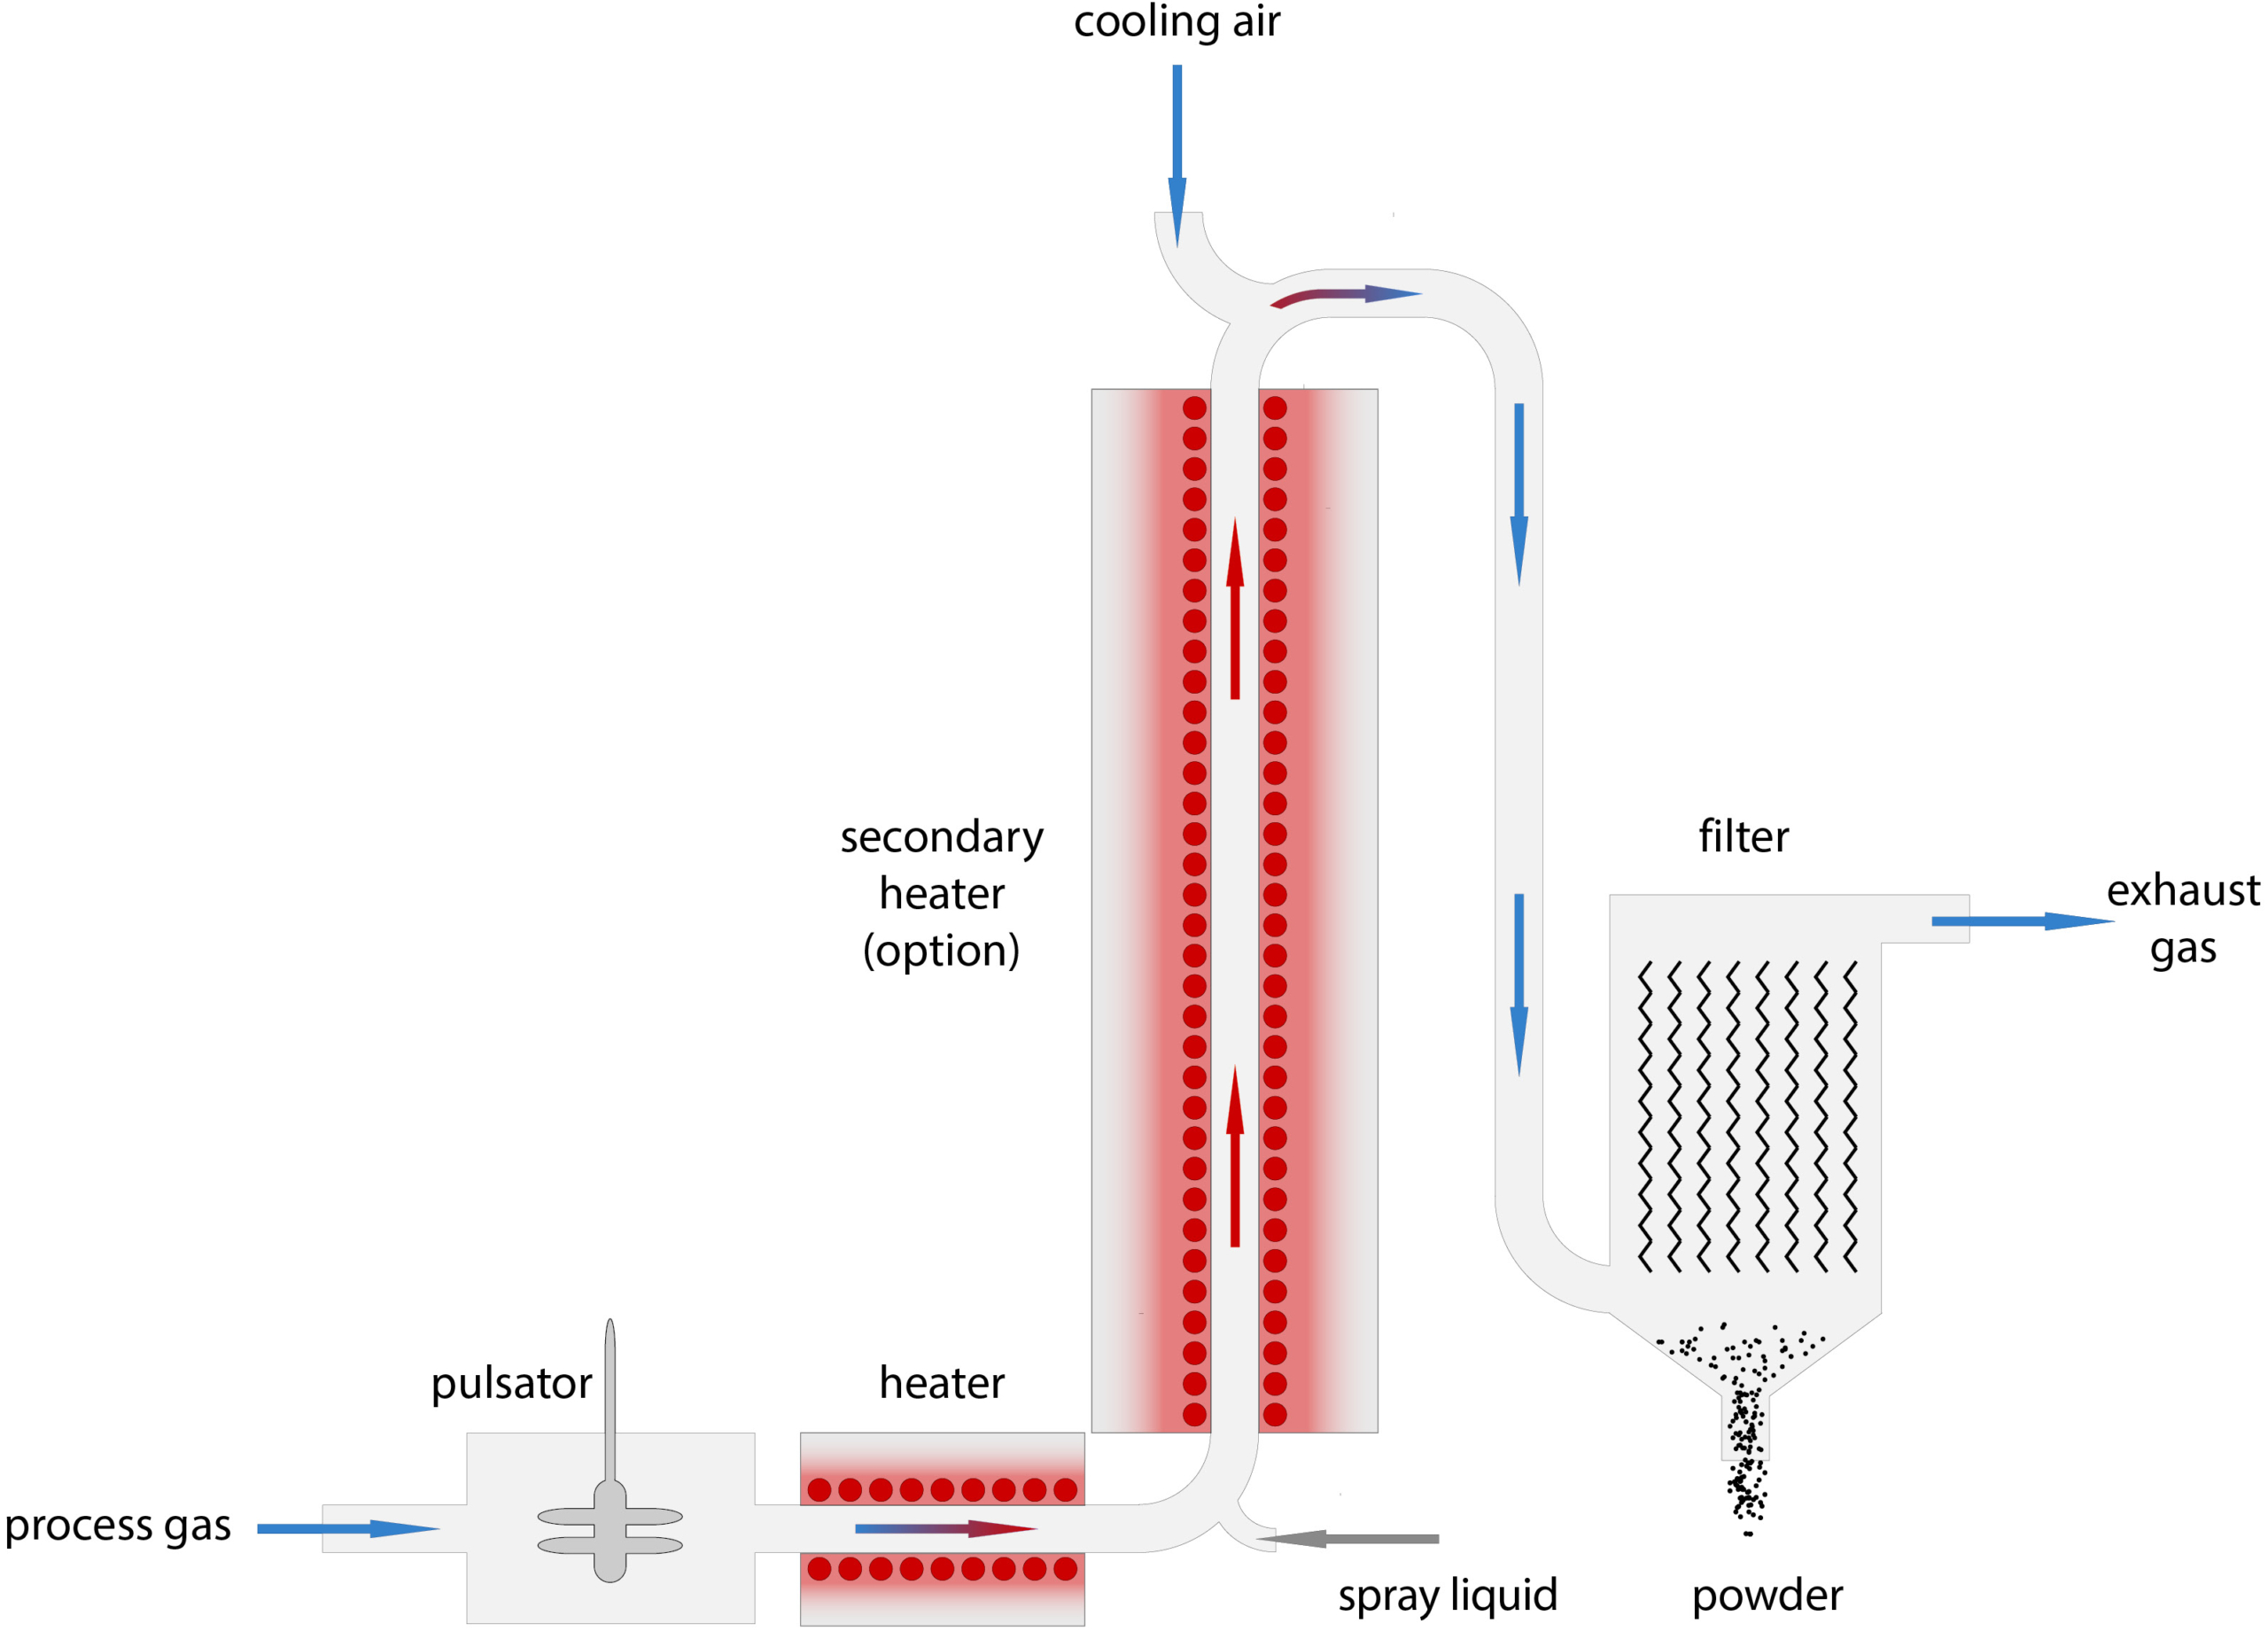 Process Setup of Glatt Powder Synthesis in a Pulsating Gas Flow